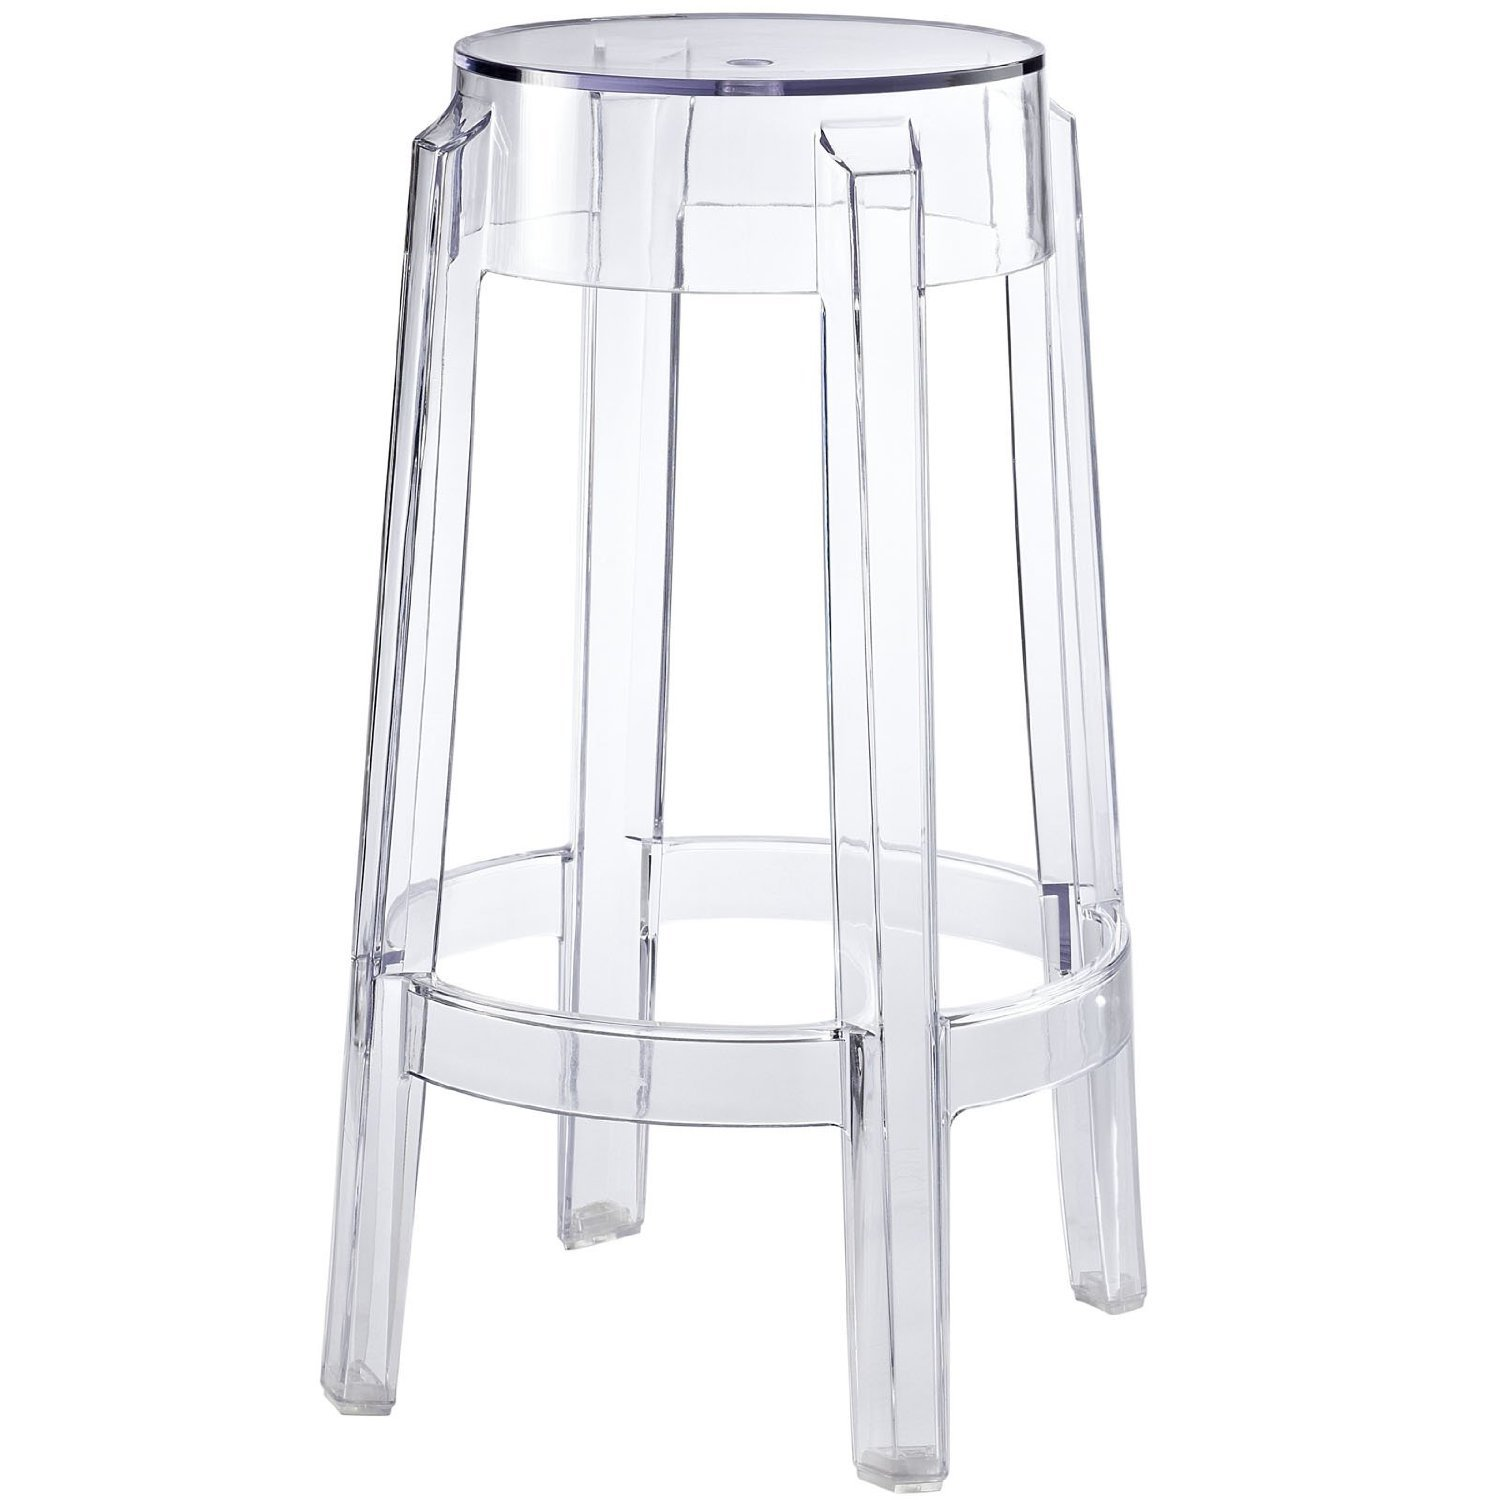 Amazon.com   Nicer Furniture ® Philippe Starck Charles Ghost Stool  Transparent Counter Height   Kitchen U0026 Dining Room Furniture